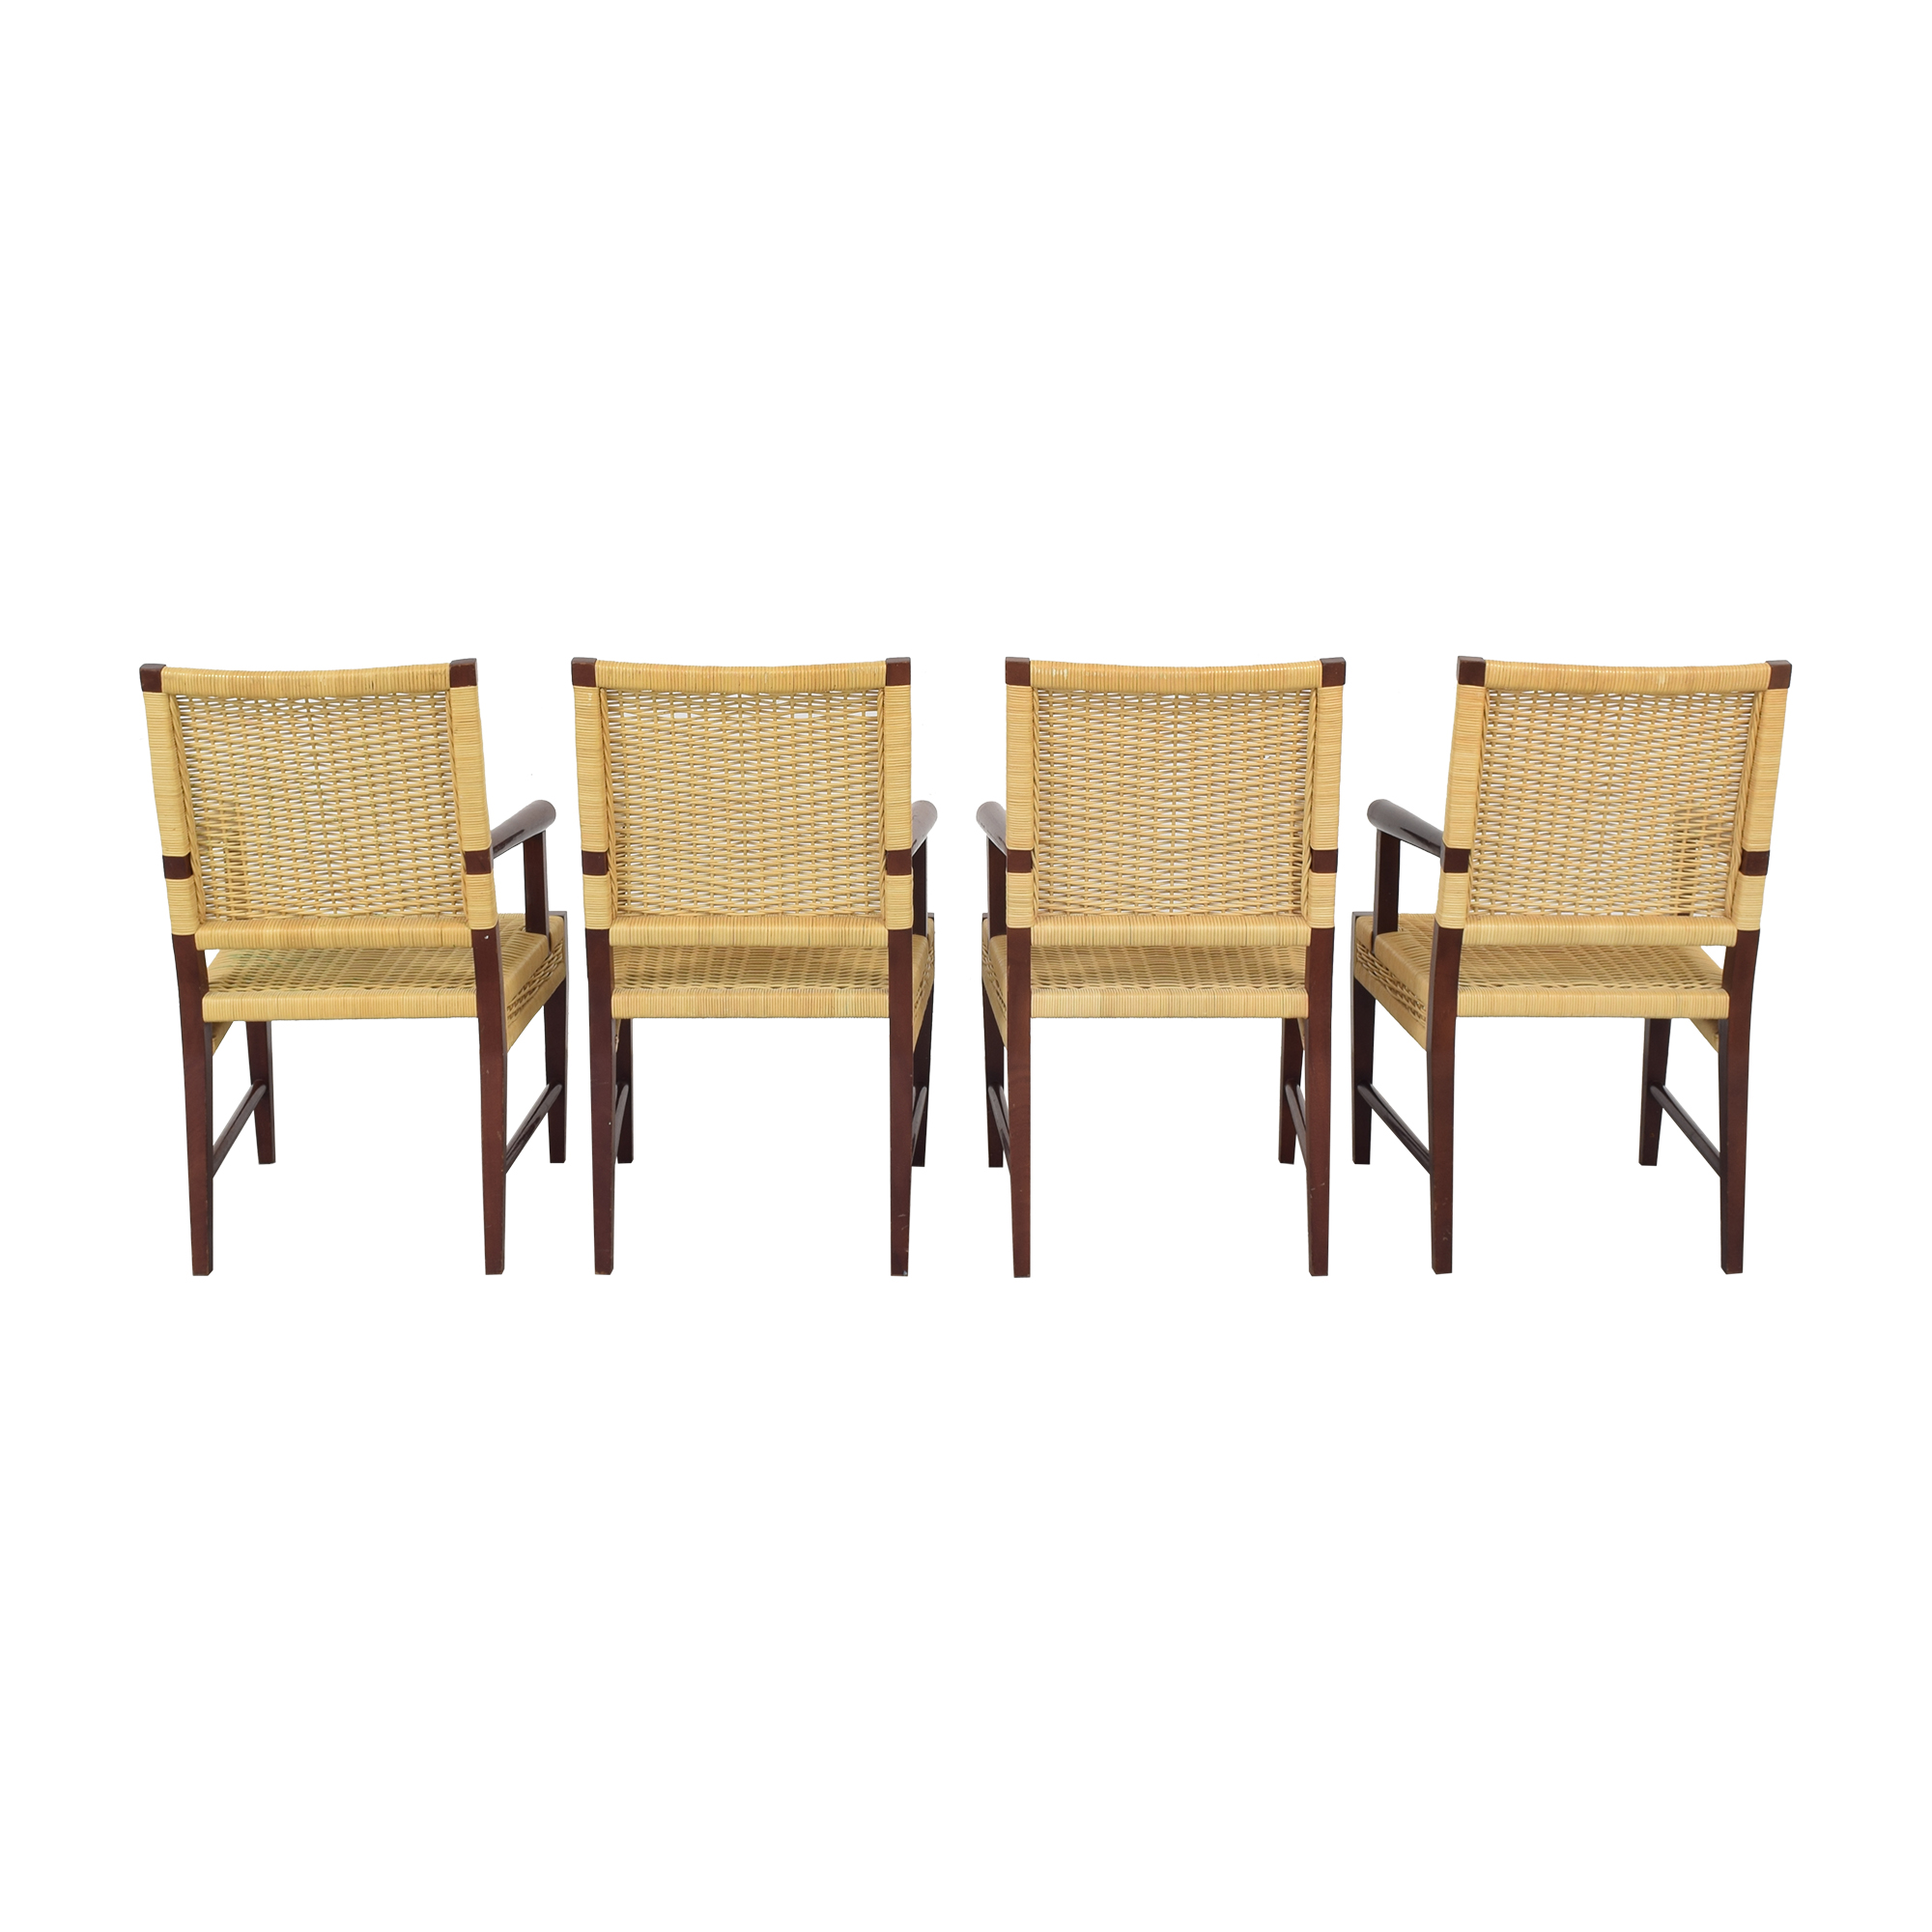 Donghia Donghia Dining Chairs in Merbau Wood with Raffia Weaving used